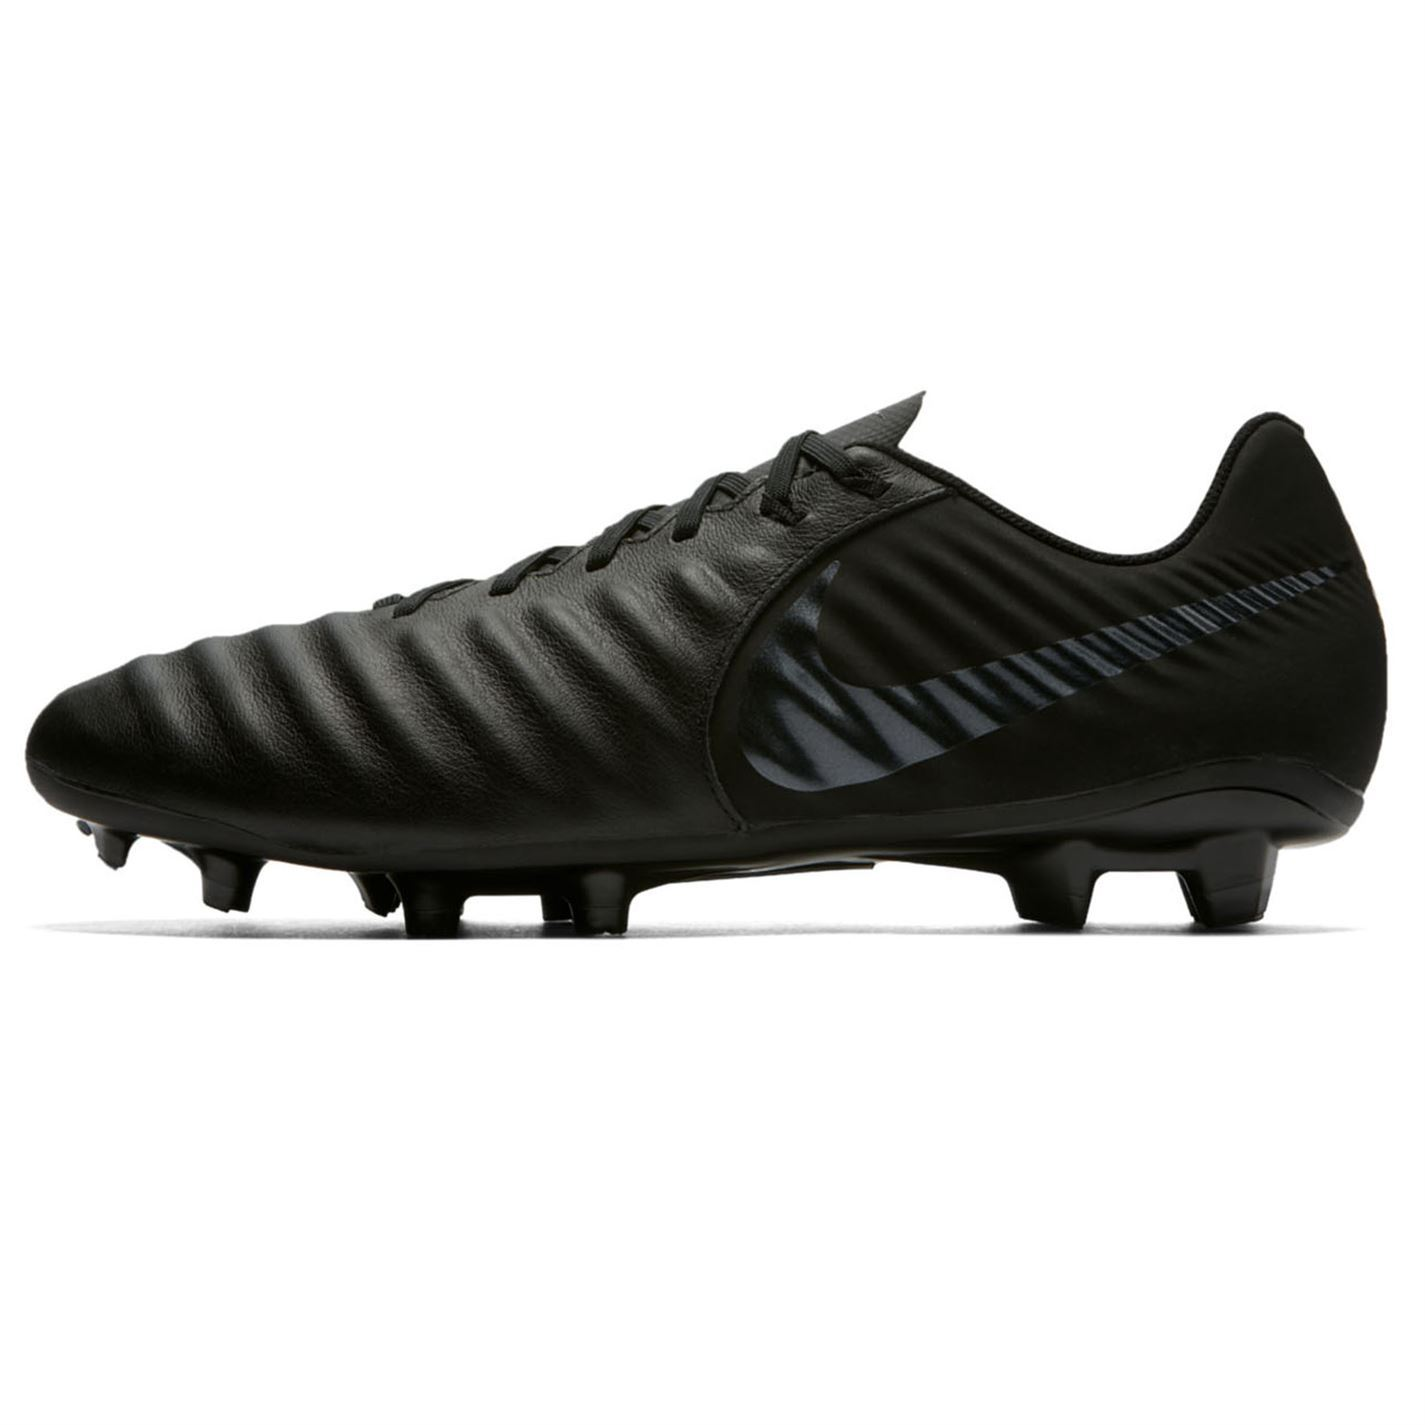 eca33af2c0f9 Nike Tiempo Legend Academy FG Firm Ground Football Boots Mens Soccer ...